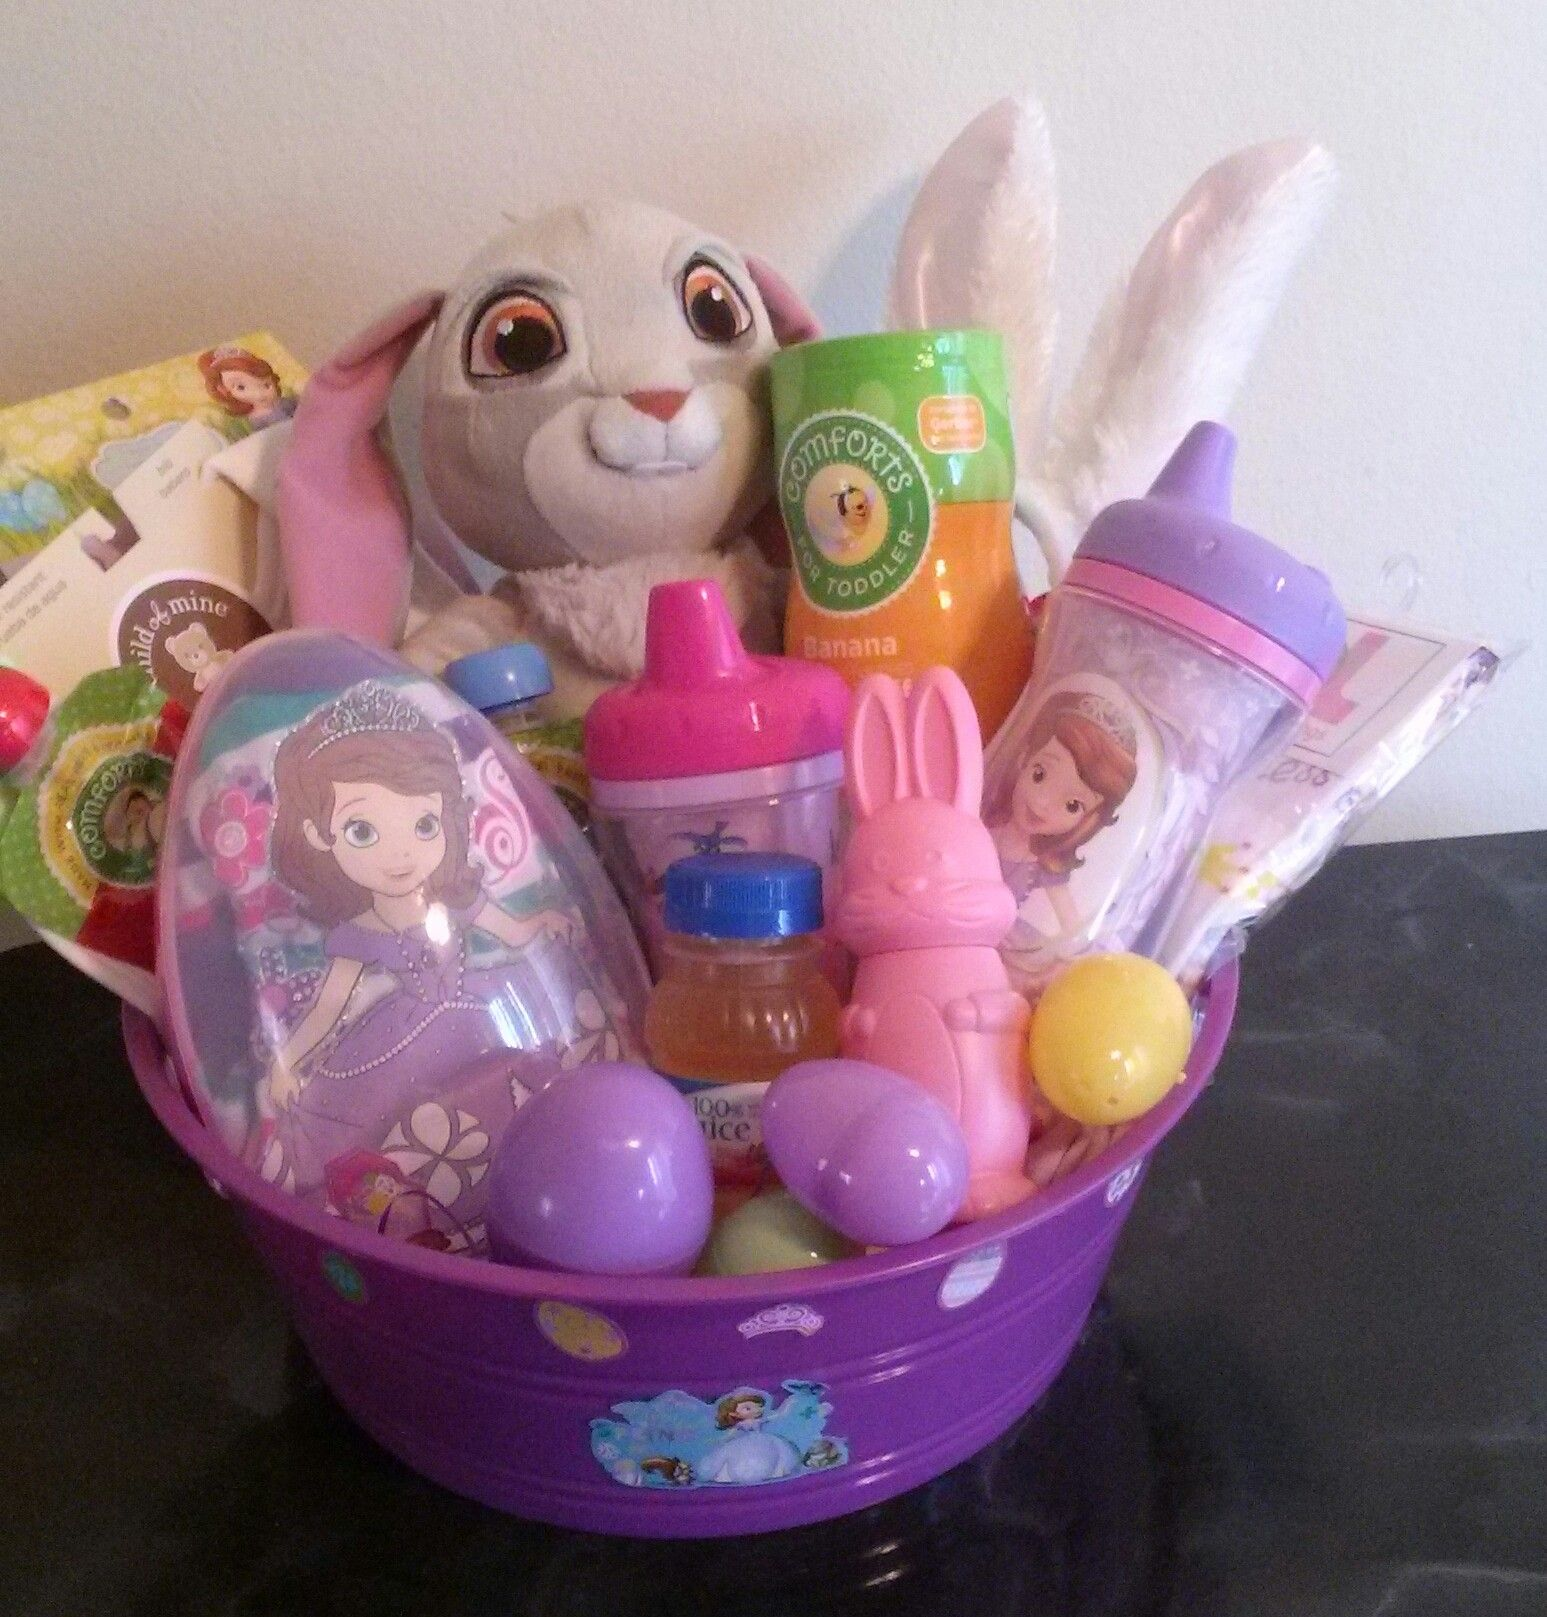 Easter basket ideas for 8 month old girl my blog pinterest easter basket ideas for 8 month old girl negle Choice Image